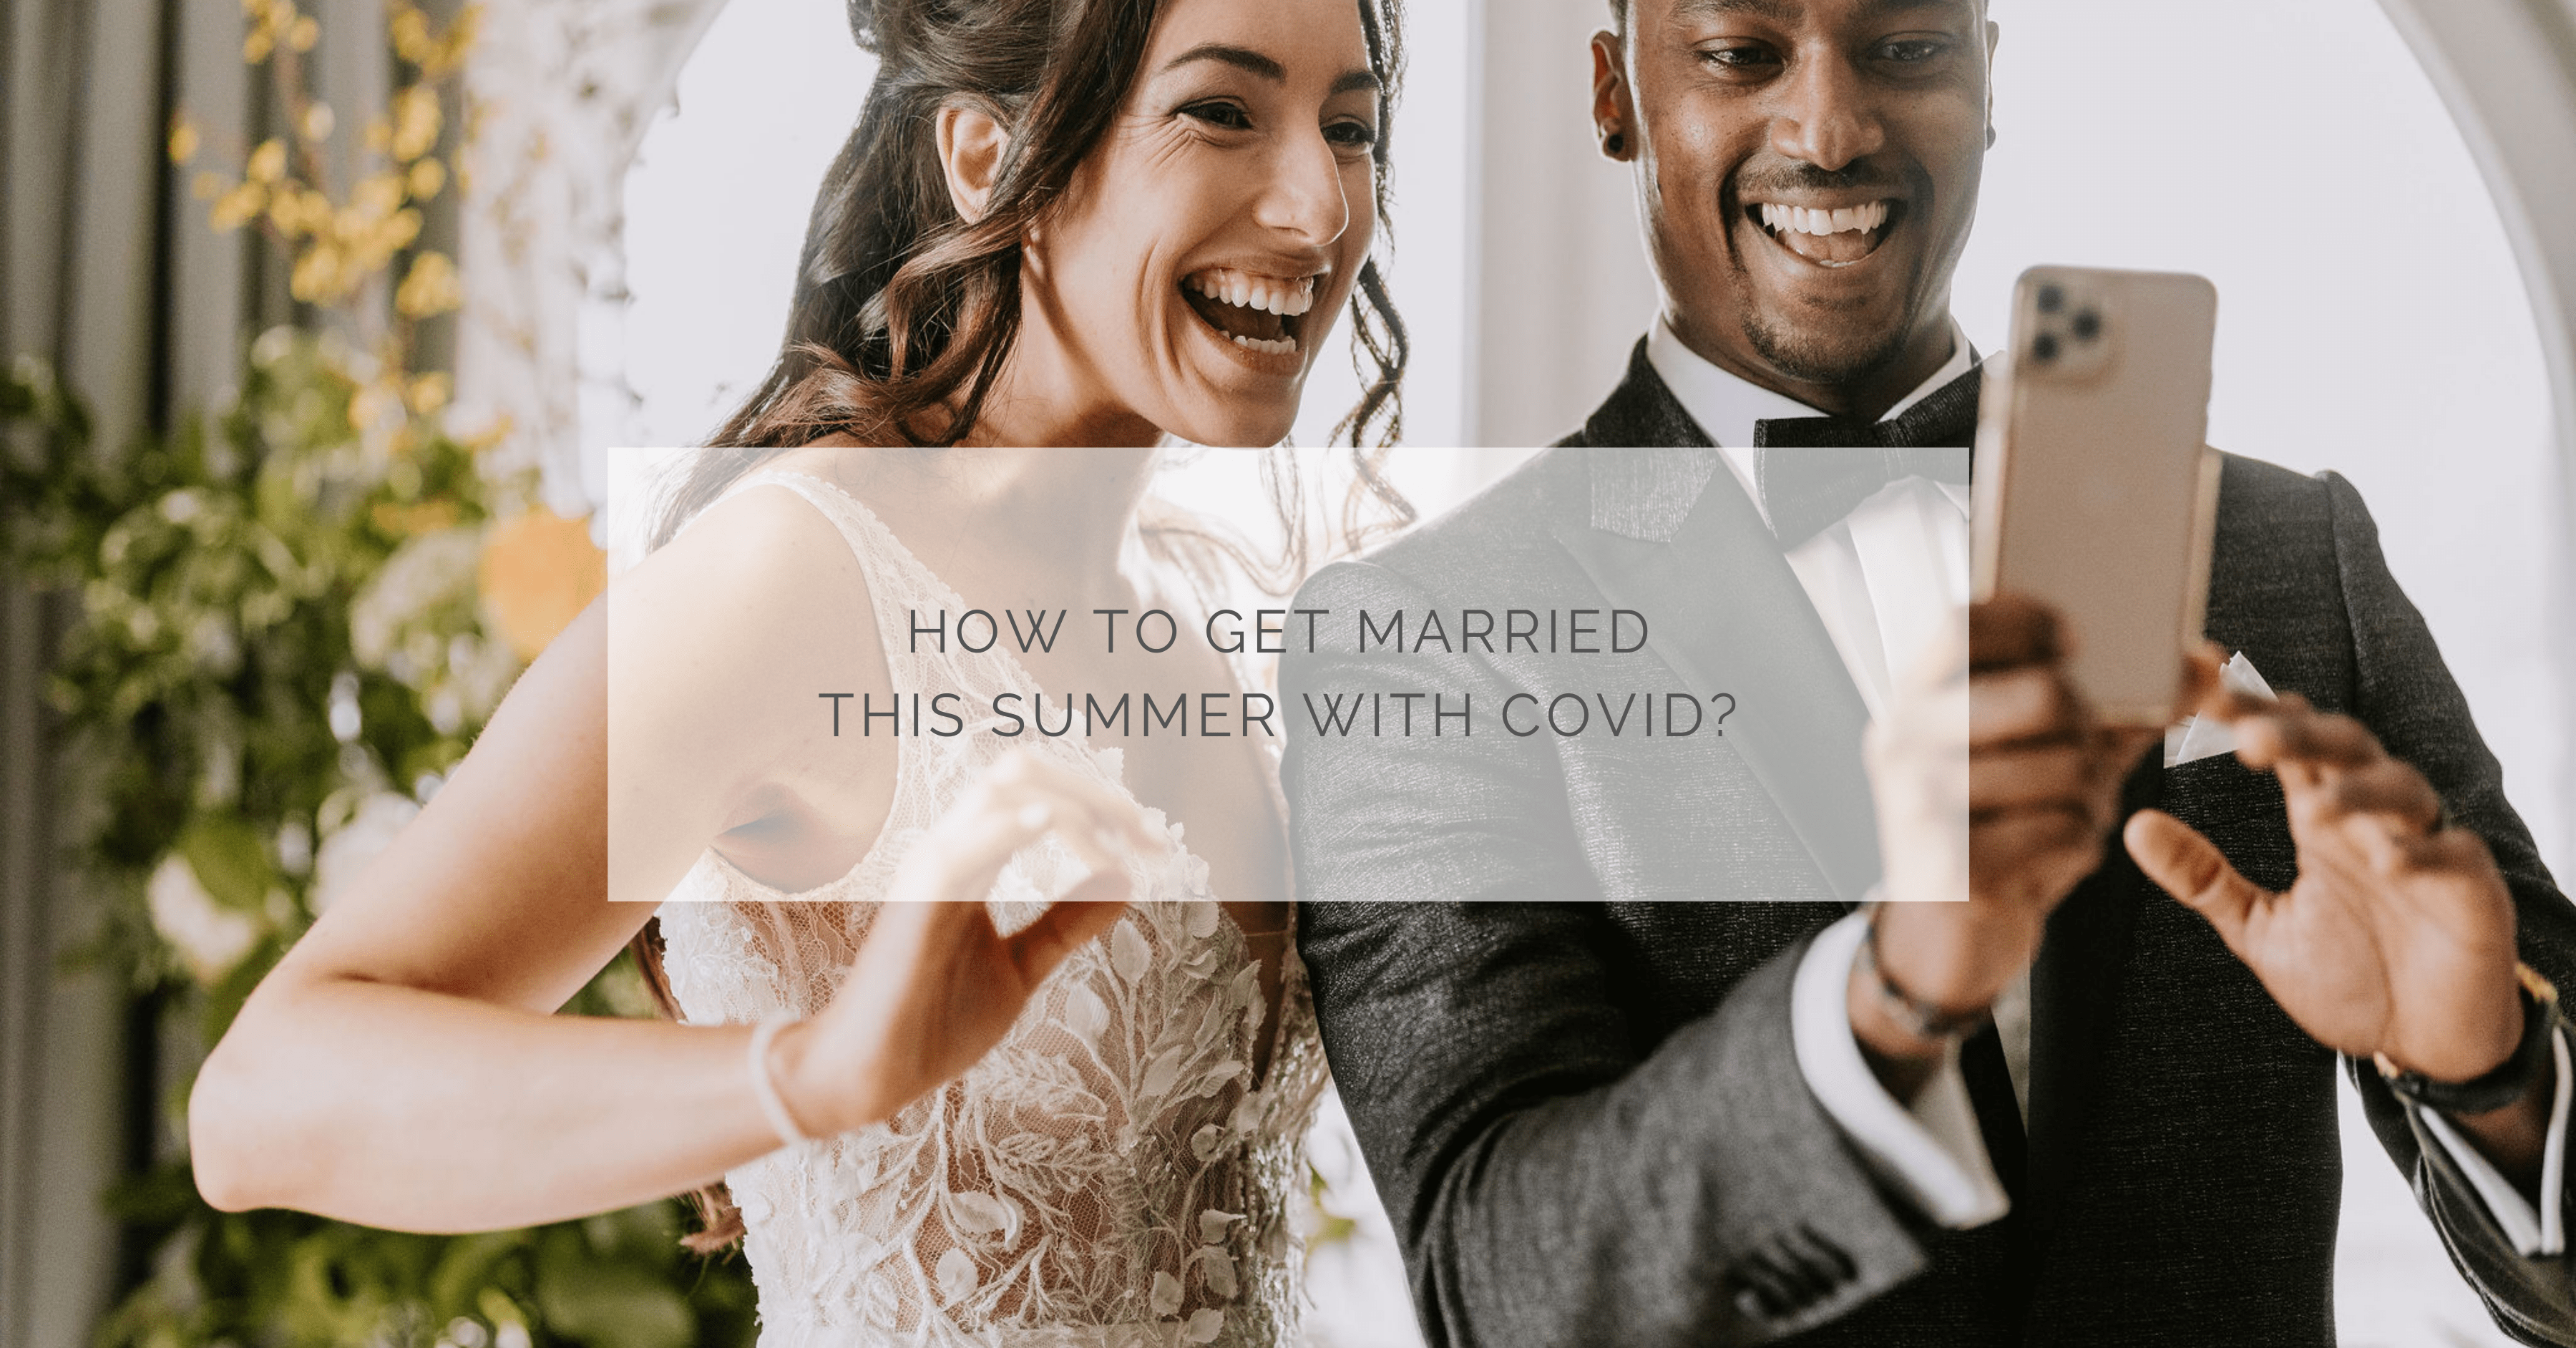 How to get married this summer with Covid?